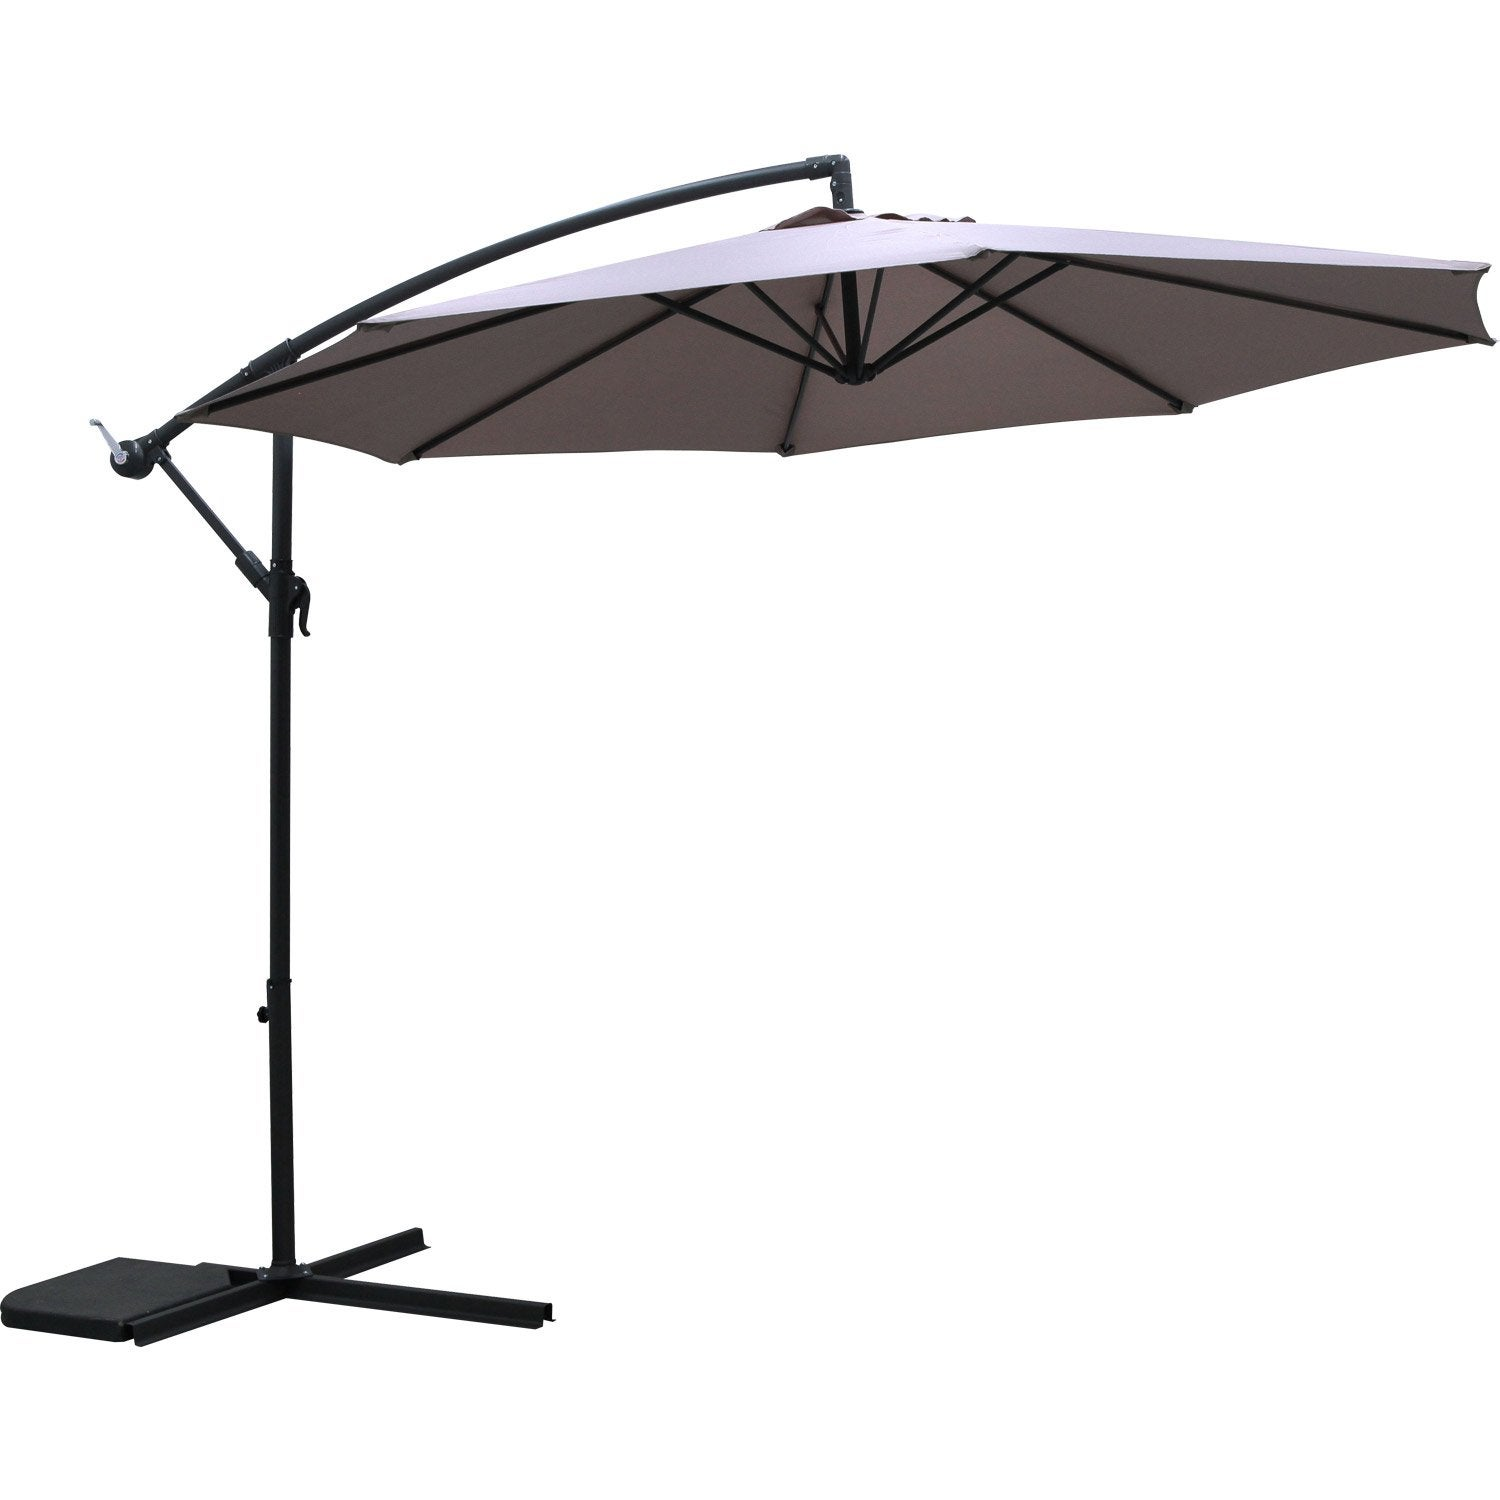 Parasol Deporte Inclinable Leroy Merlin